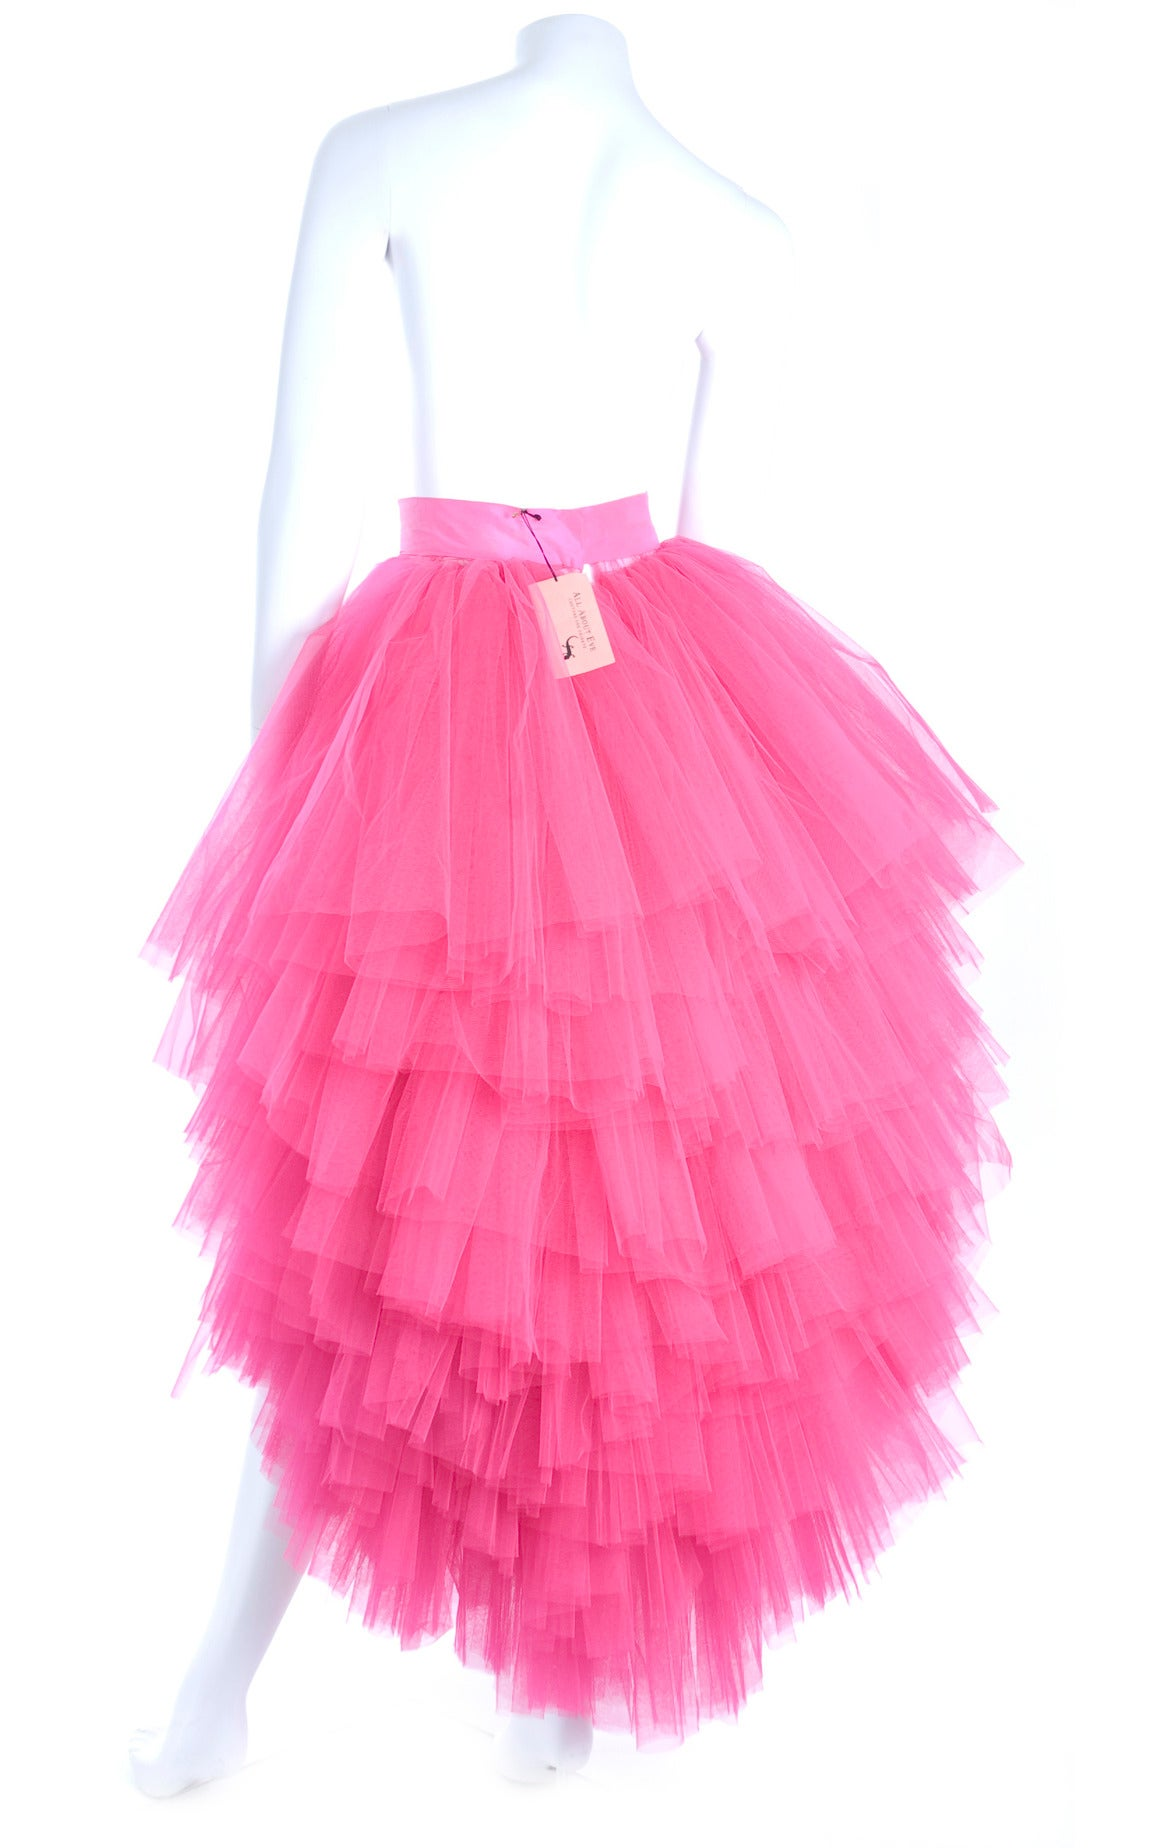 All About Eve Couture by Talbot Runhof Tulle Skirt 6